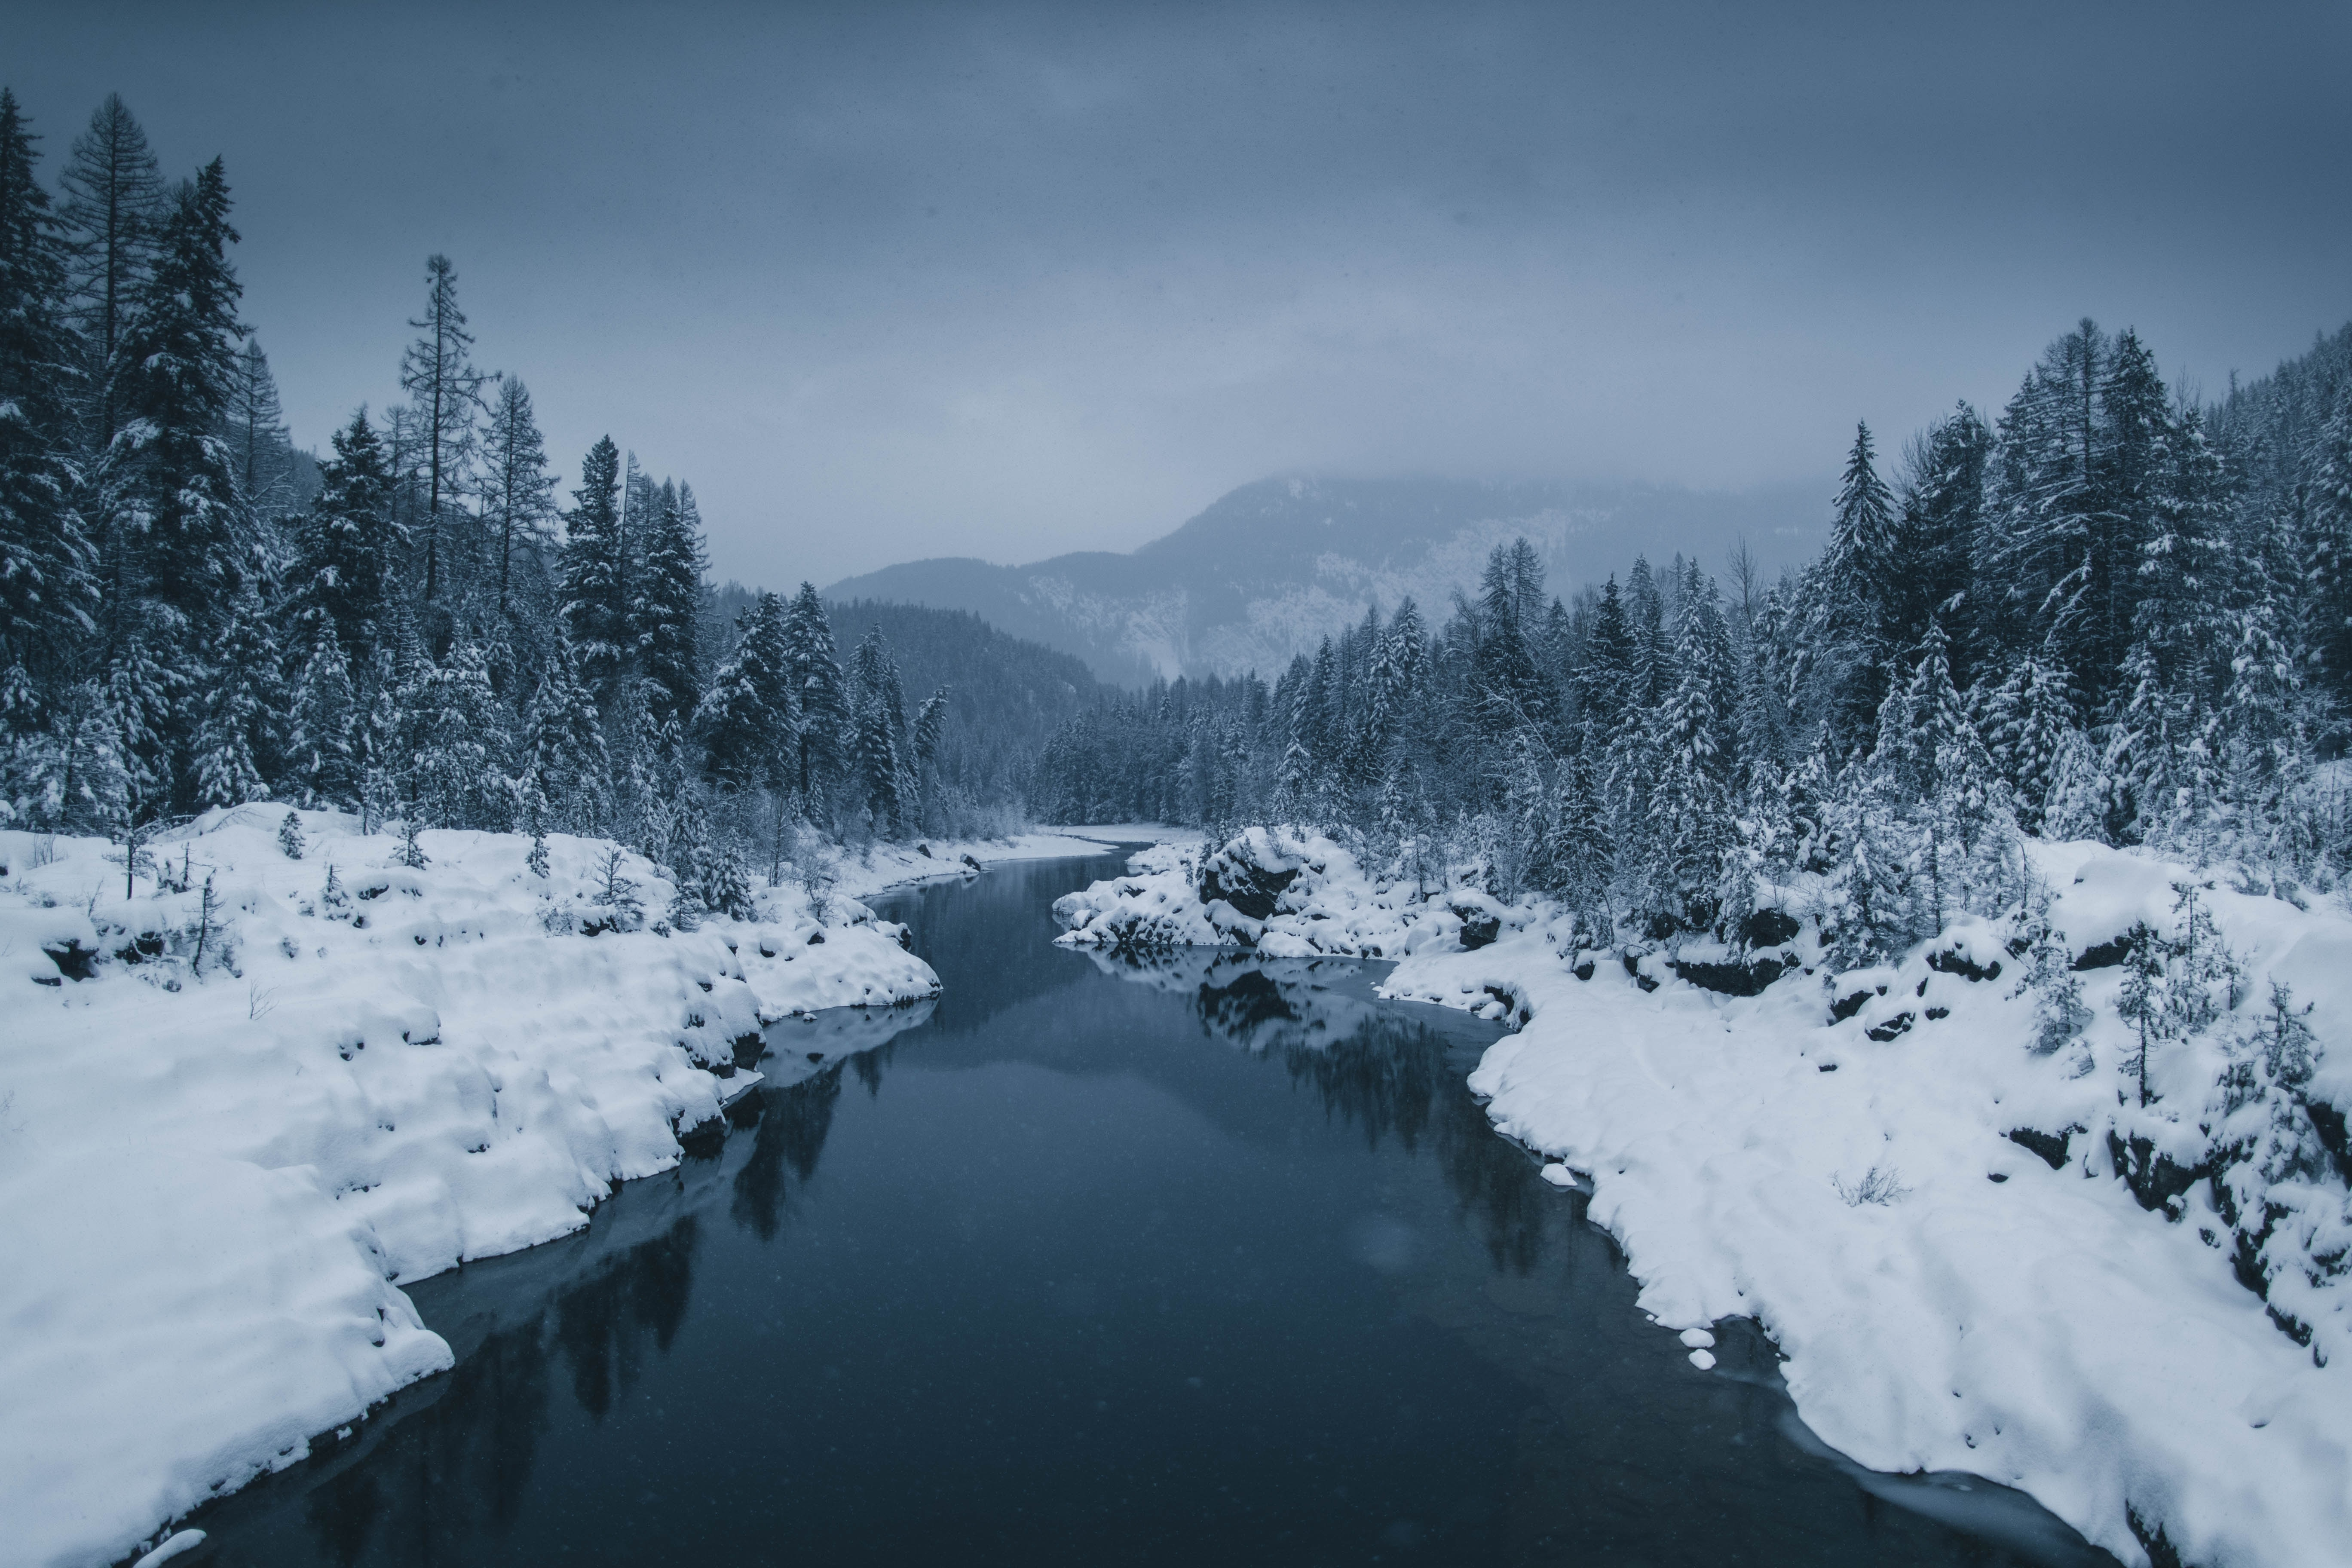 78533 free wallpaper 1080x2400 for phone, download images Winter, Nature, Rivers, Trees, Snow, Fog 1080x2400 for mobile